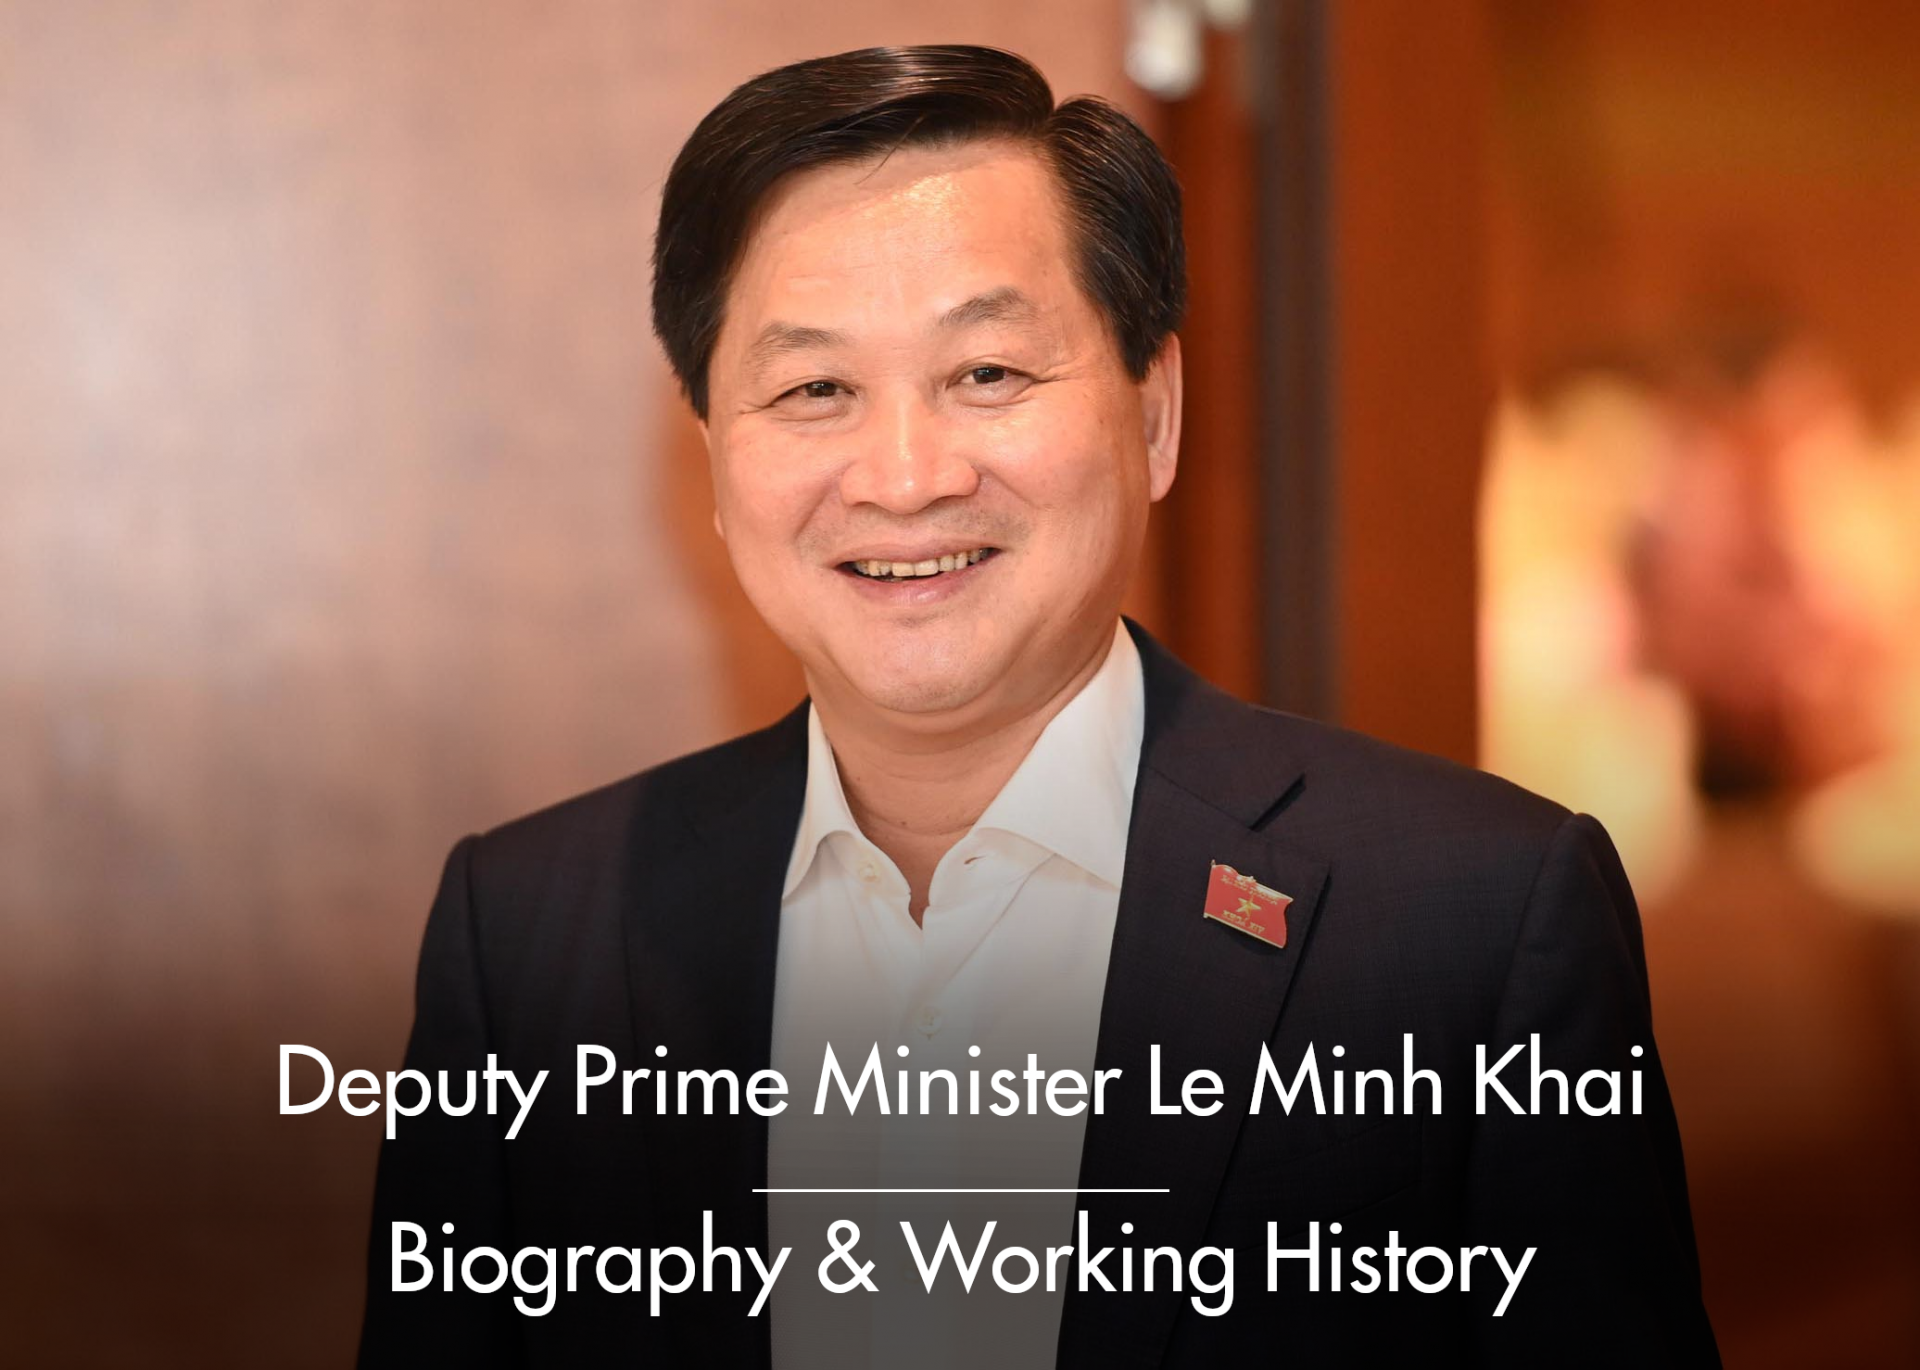 Deputy Prime Minister Le Minh Khai: Biography, Positions and Working History